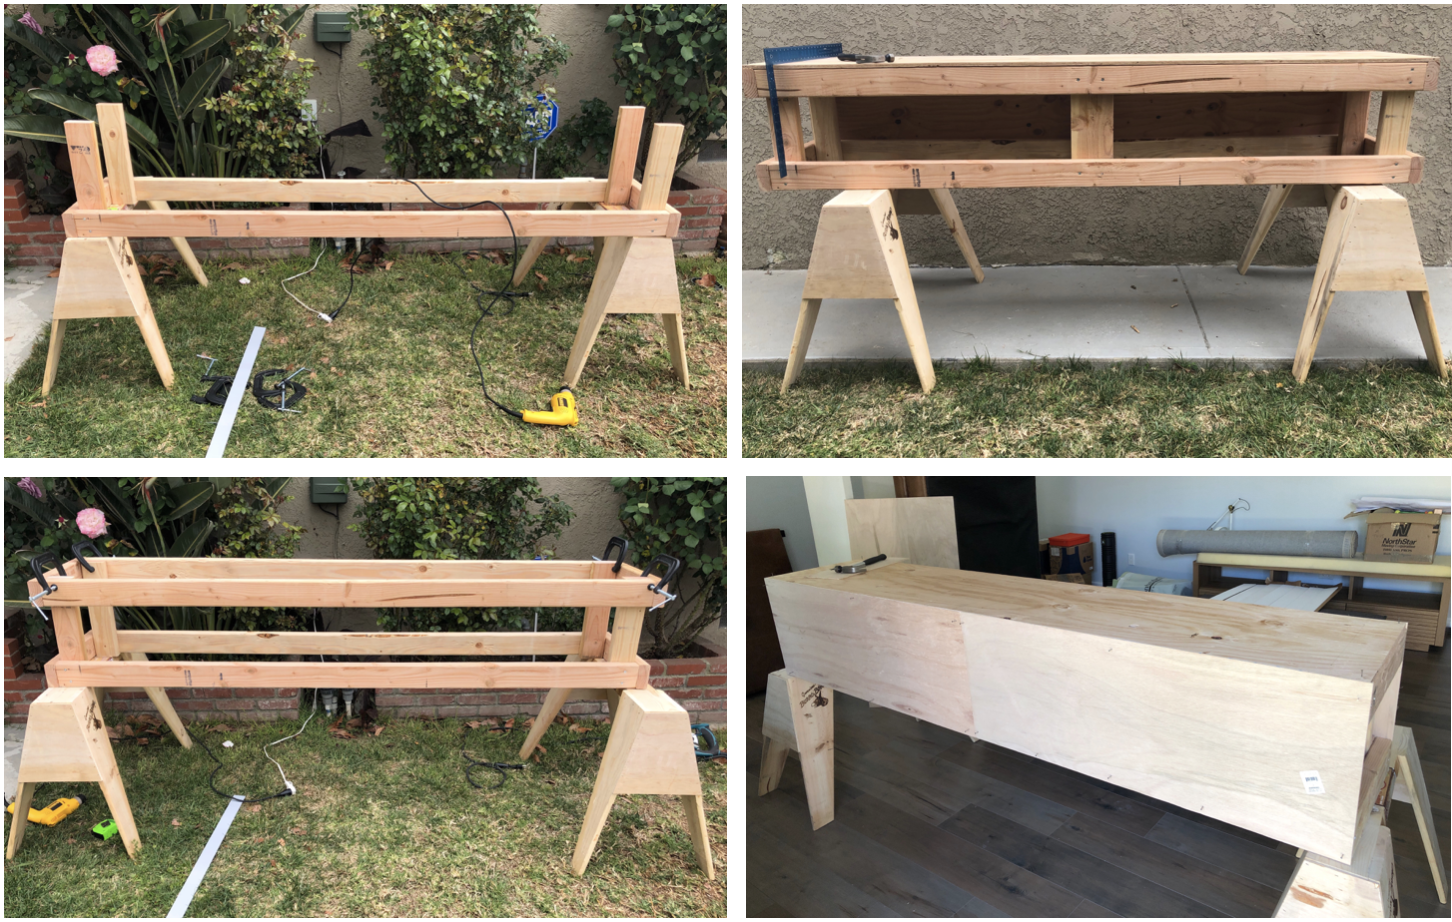 Basic bench construction using 2x4s, plywood and piano hinges for the storage.